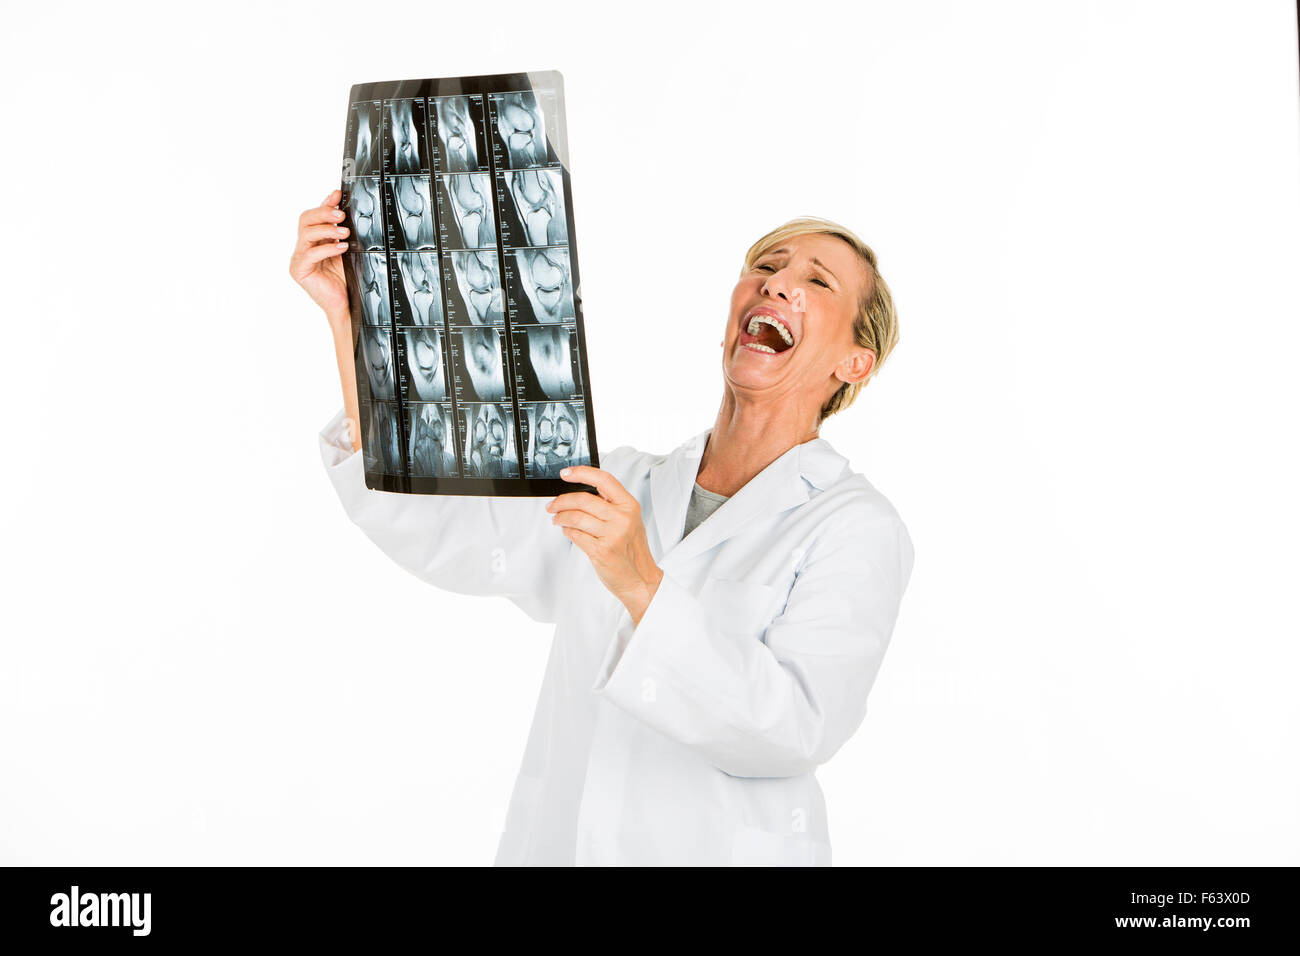 doctor woman looking at patient x-rays - Stock Image